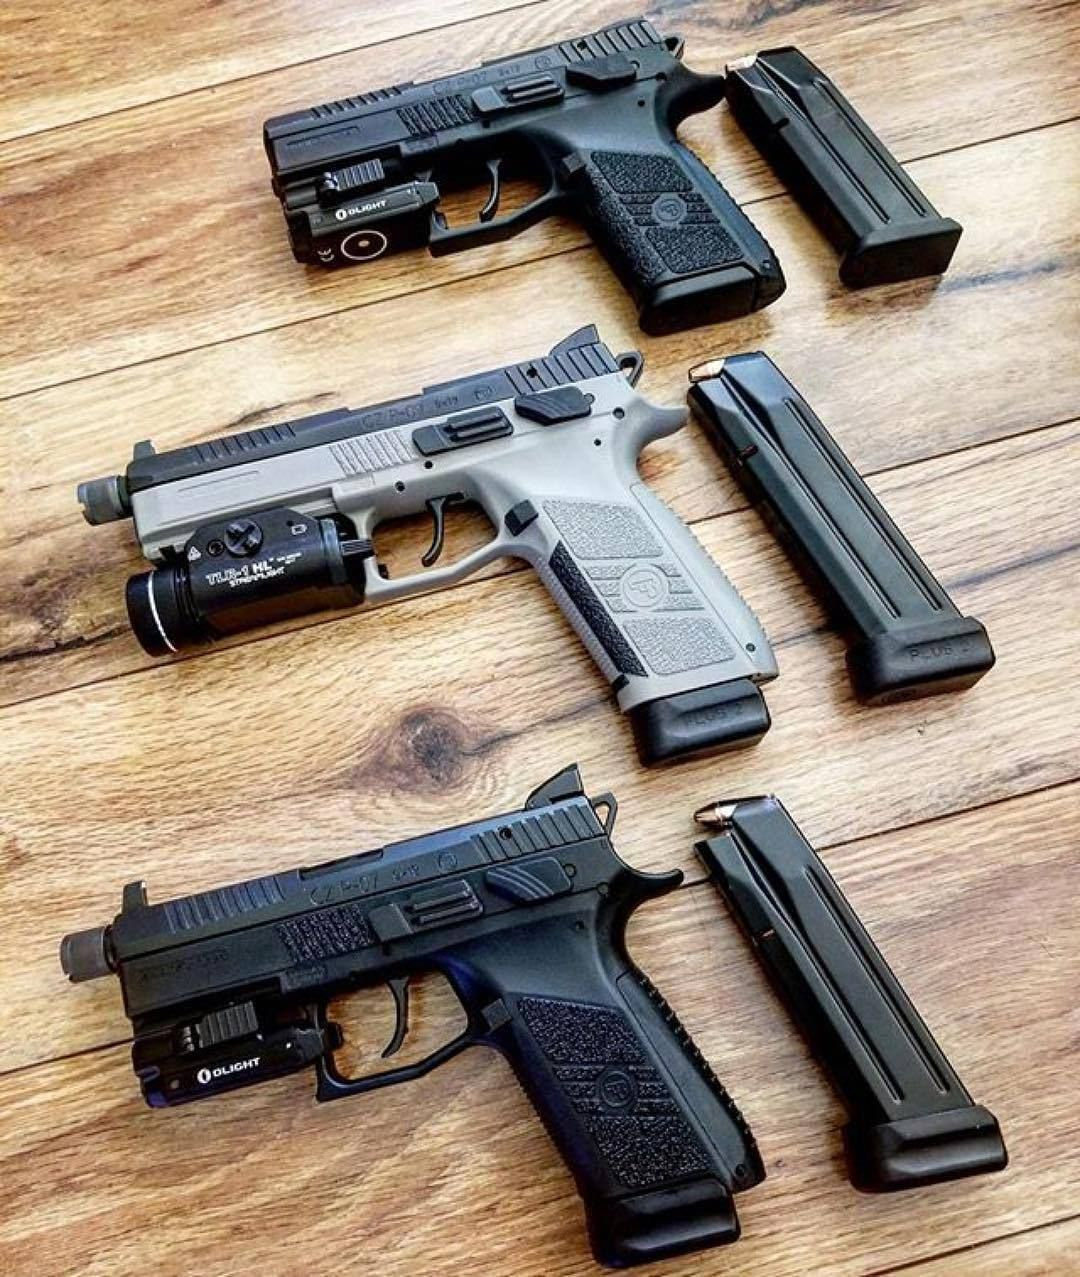 Pin by Cell Griff on New Sidearms | Hand guns, Guns, Pistol